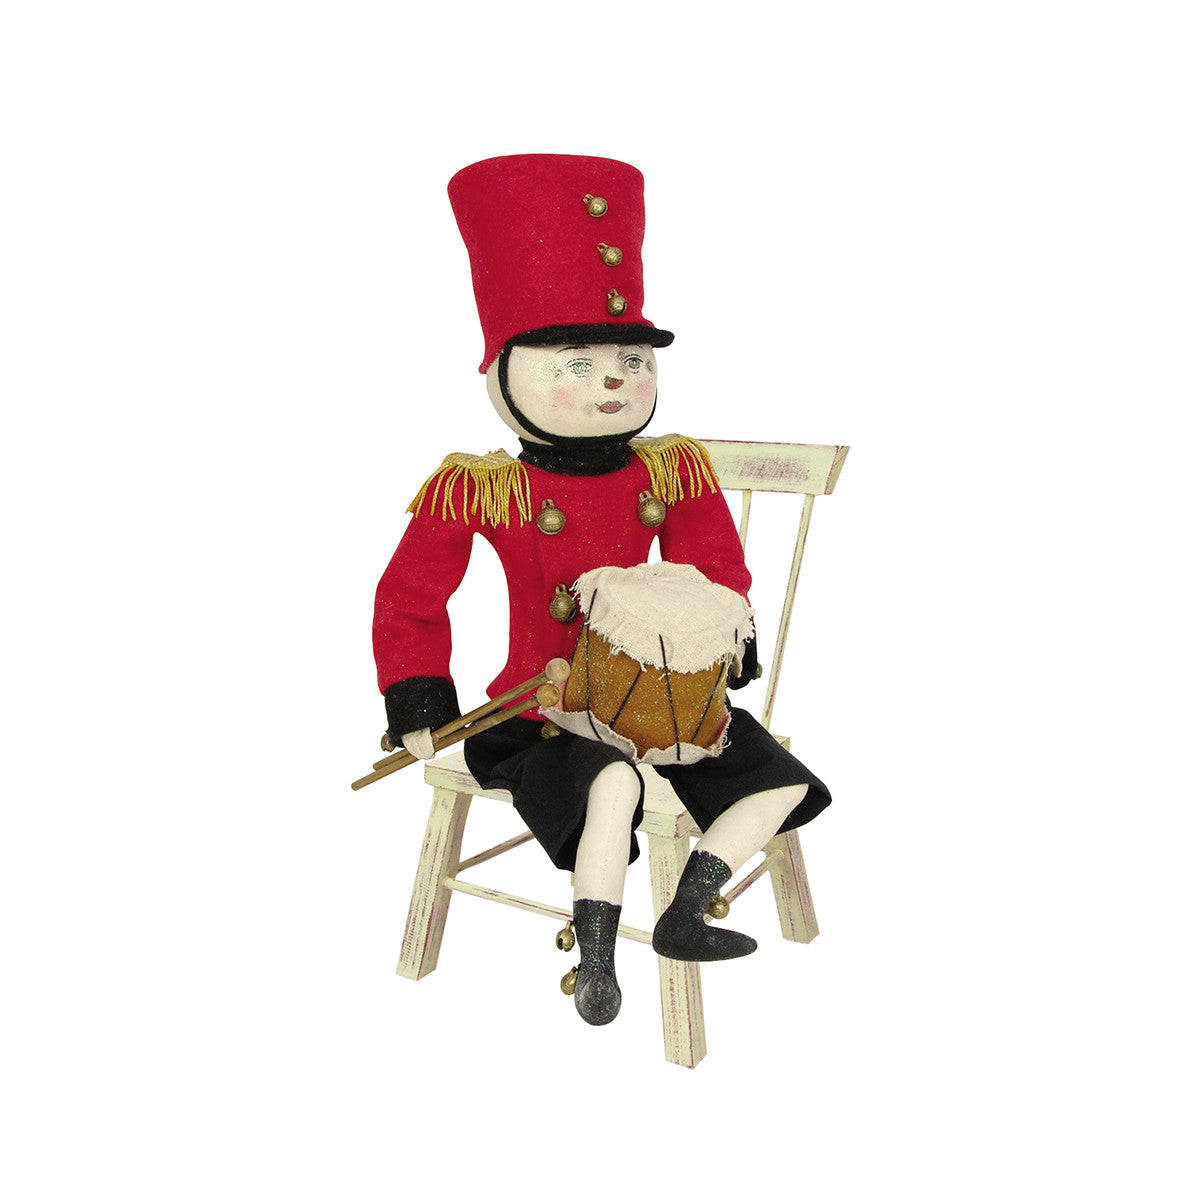 Joe Spencer Drummond Drummer Snowman Doll